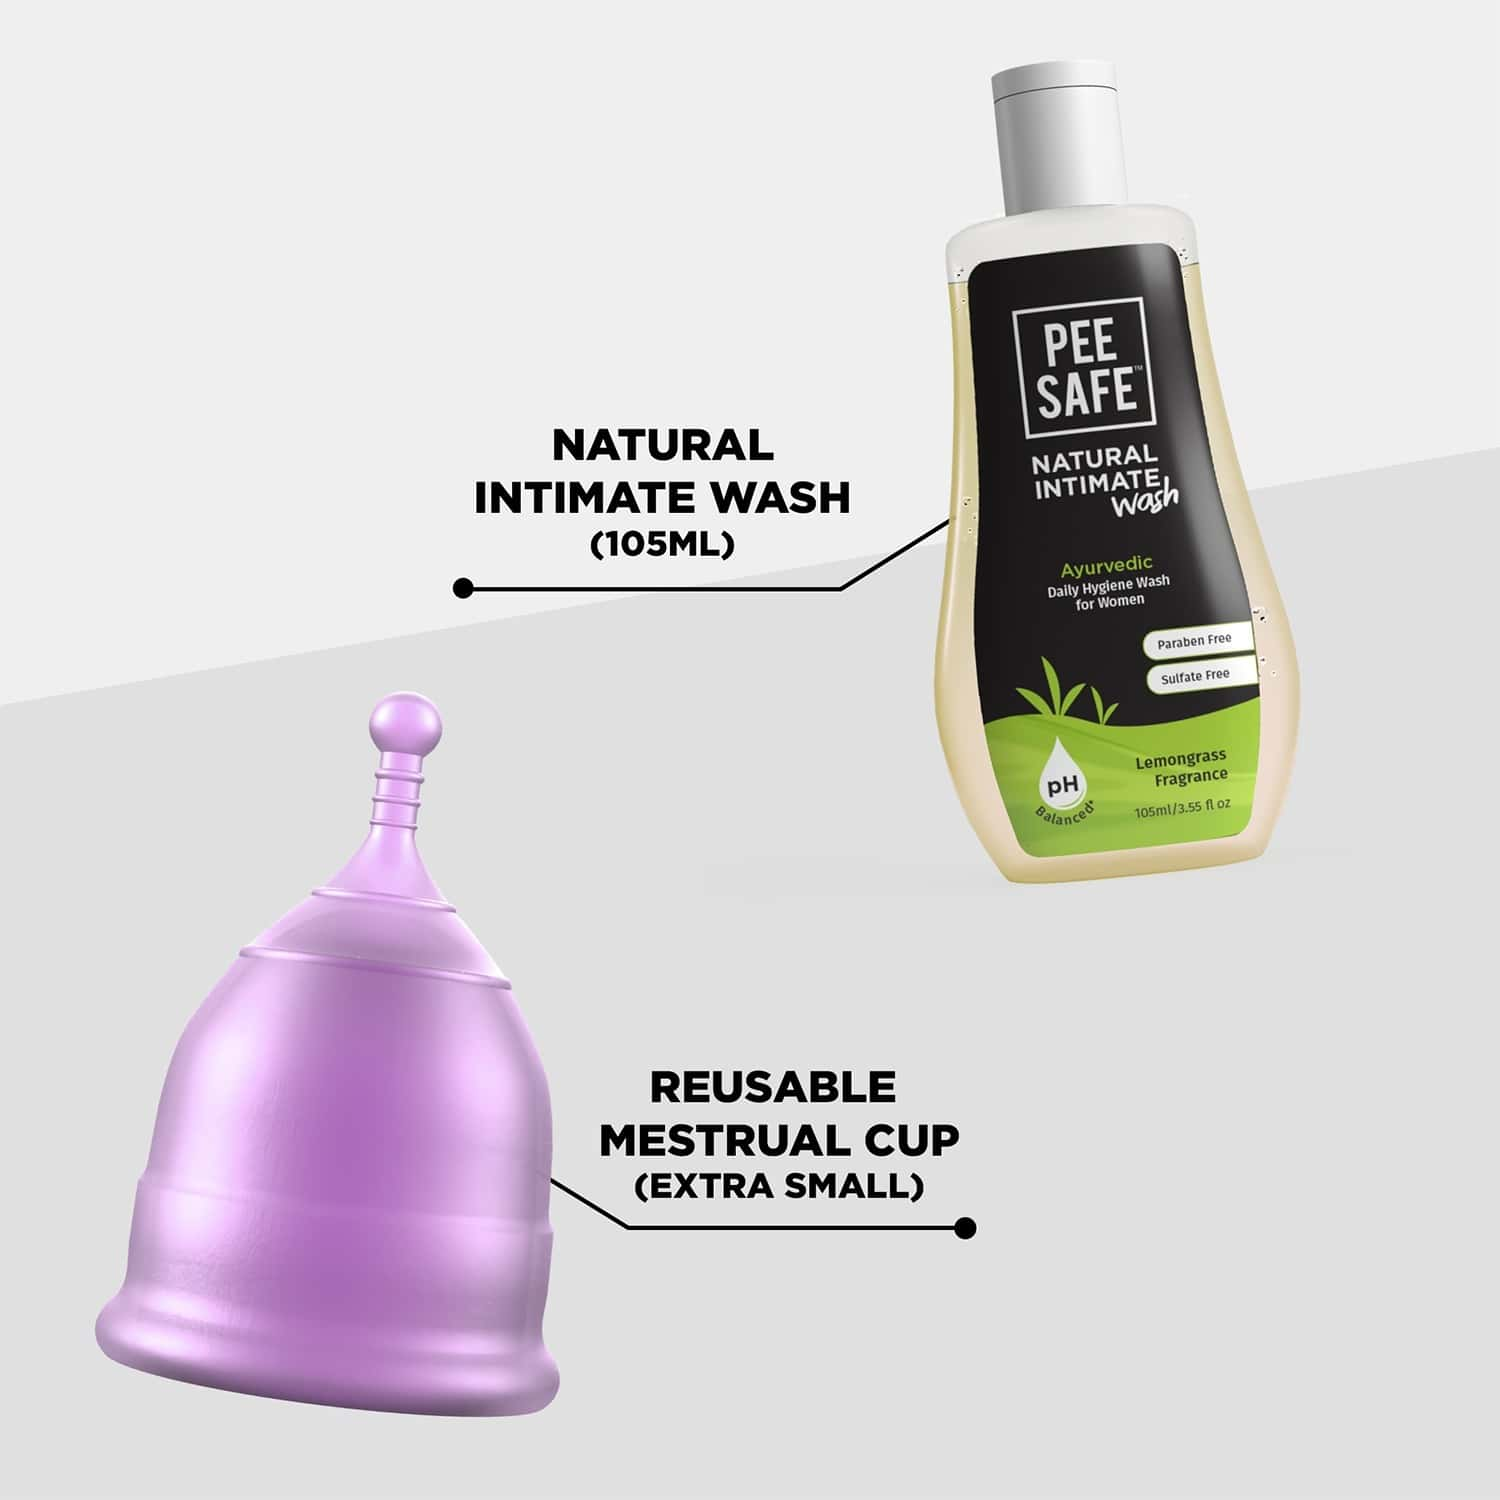 Pee Safe Menstrual Hygiene Combo Reusable Menstrual Cup (extra Small) With Natural Intimate Wash For Women - 105 Ml